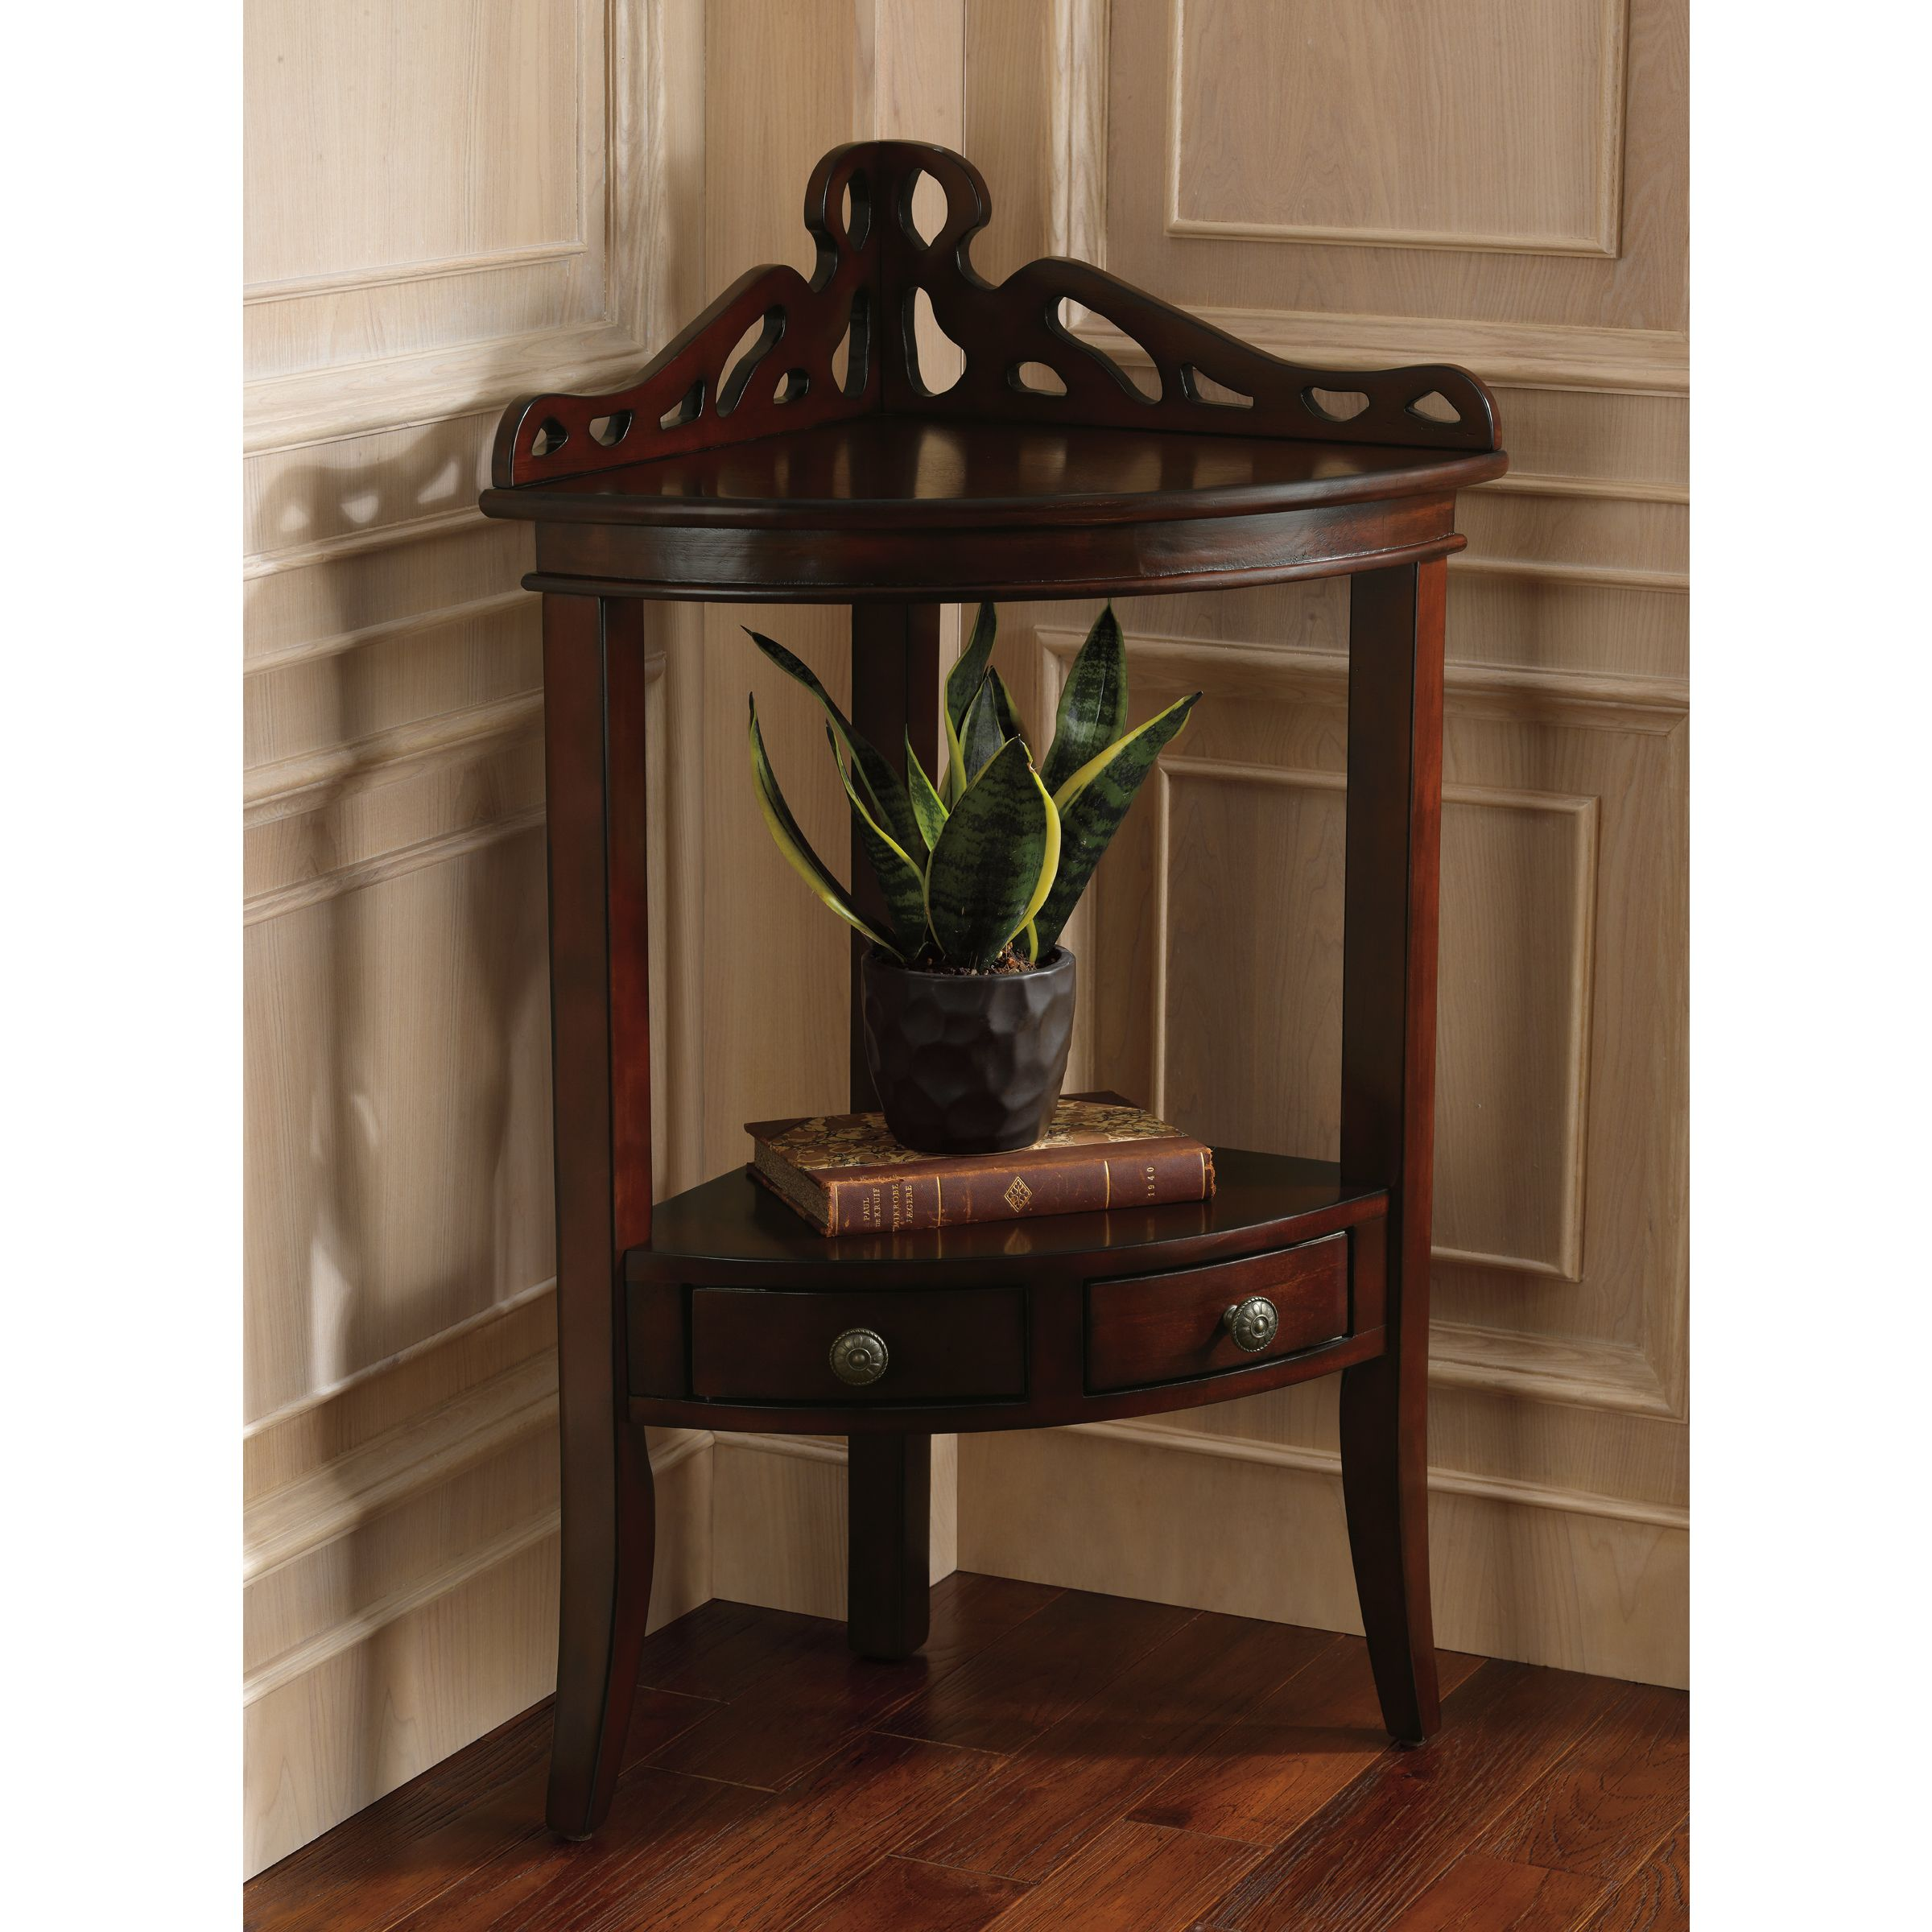 the grace corner accent table perfect piece fit elegantly with storage into your entry hall living room bedroom sits flush coastal decor lamps target mirrored side drawer